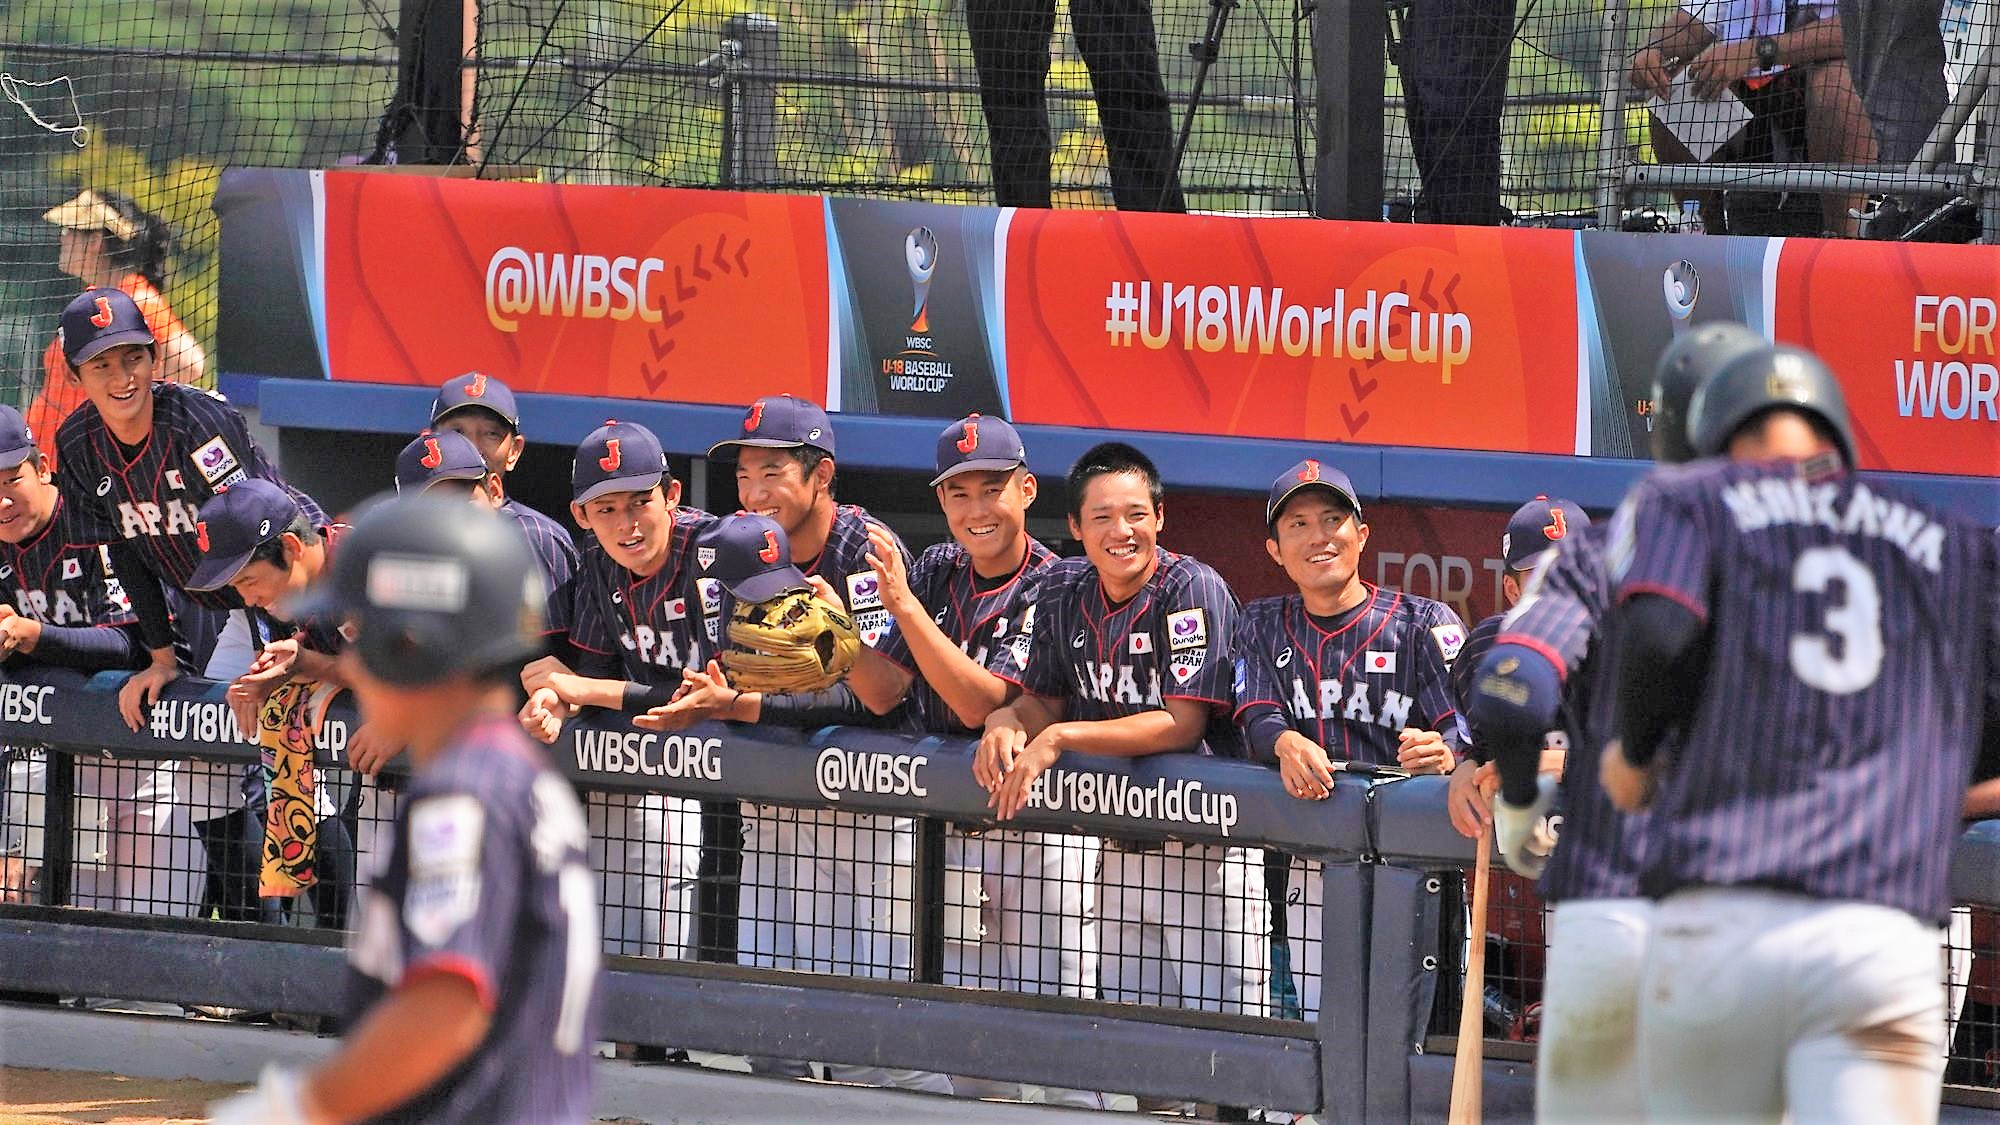 It was a day full of smiles for Japan